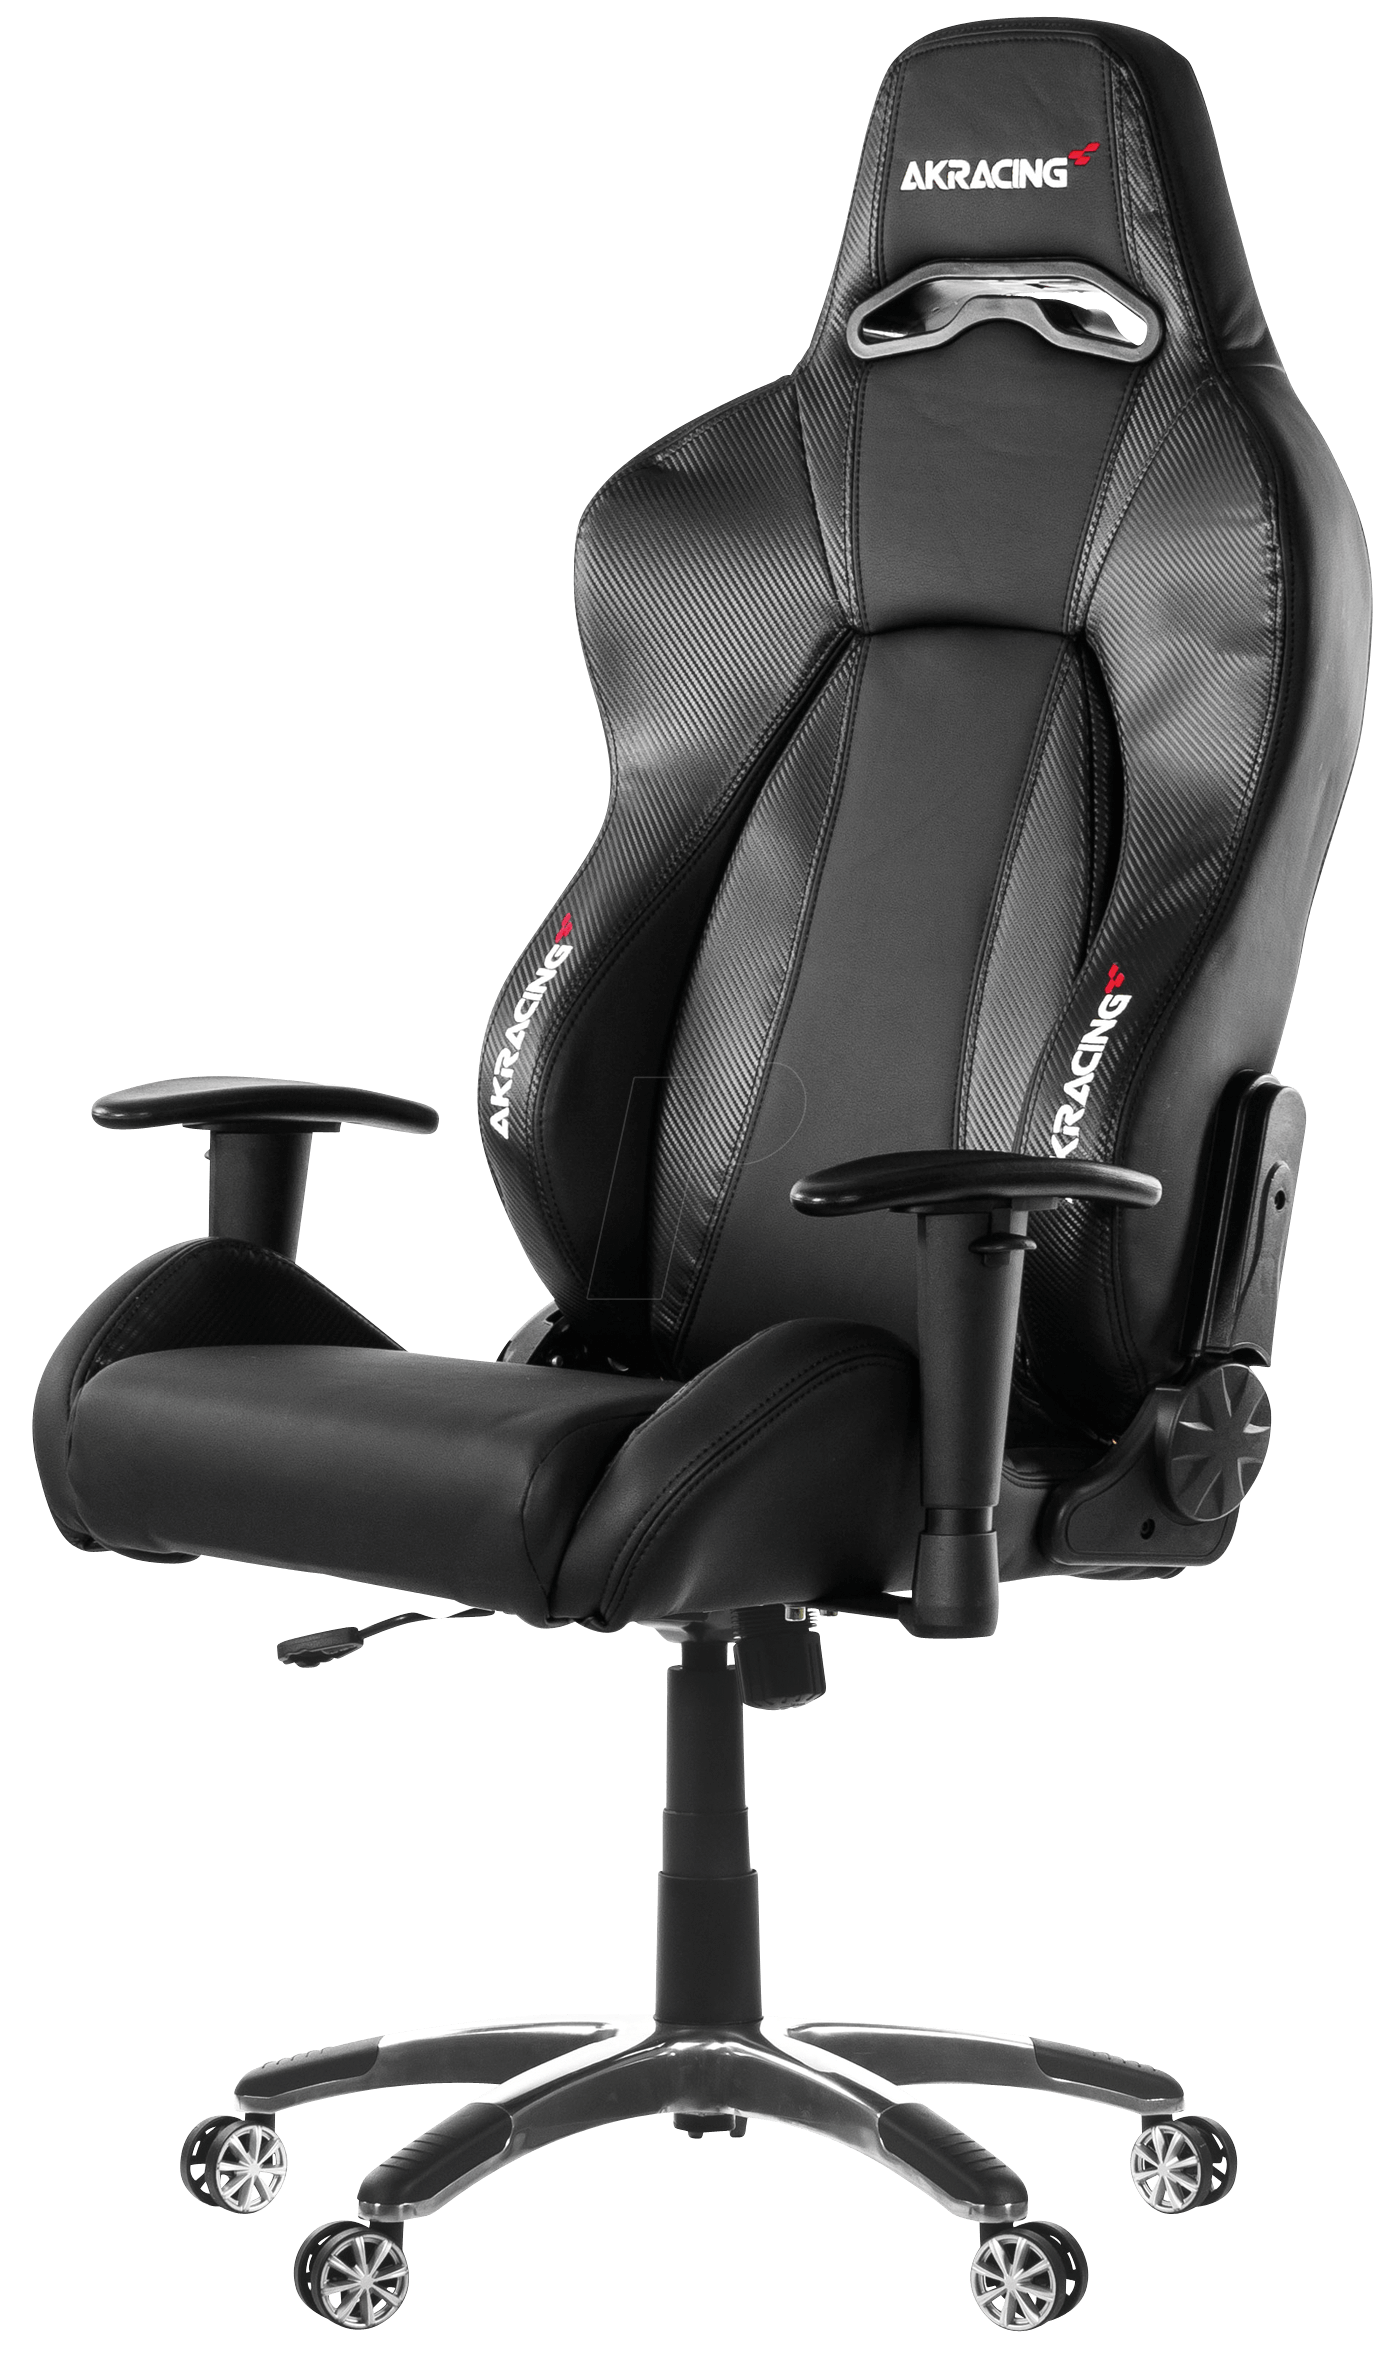 akracing premium v2 gaming chair preisvergleich b rostuhl g nstig kaufen bei. Black Bedroom Furniture Sets. Home Design Ideas